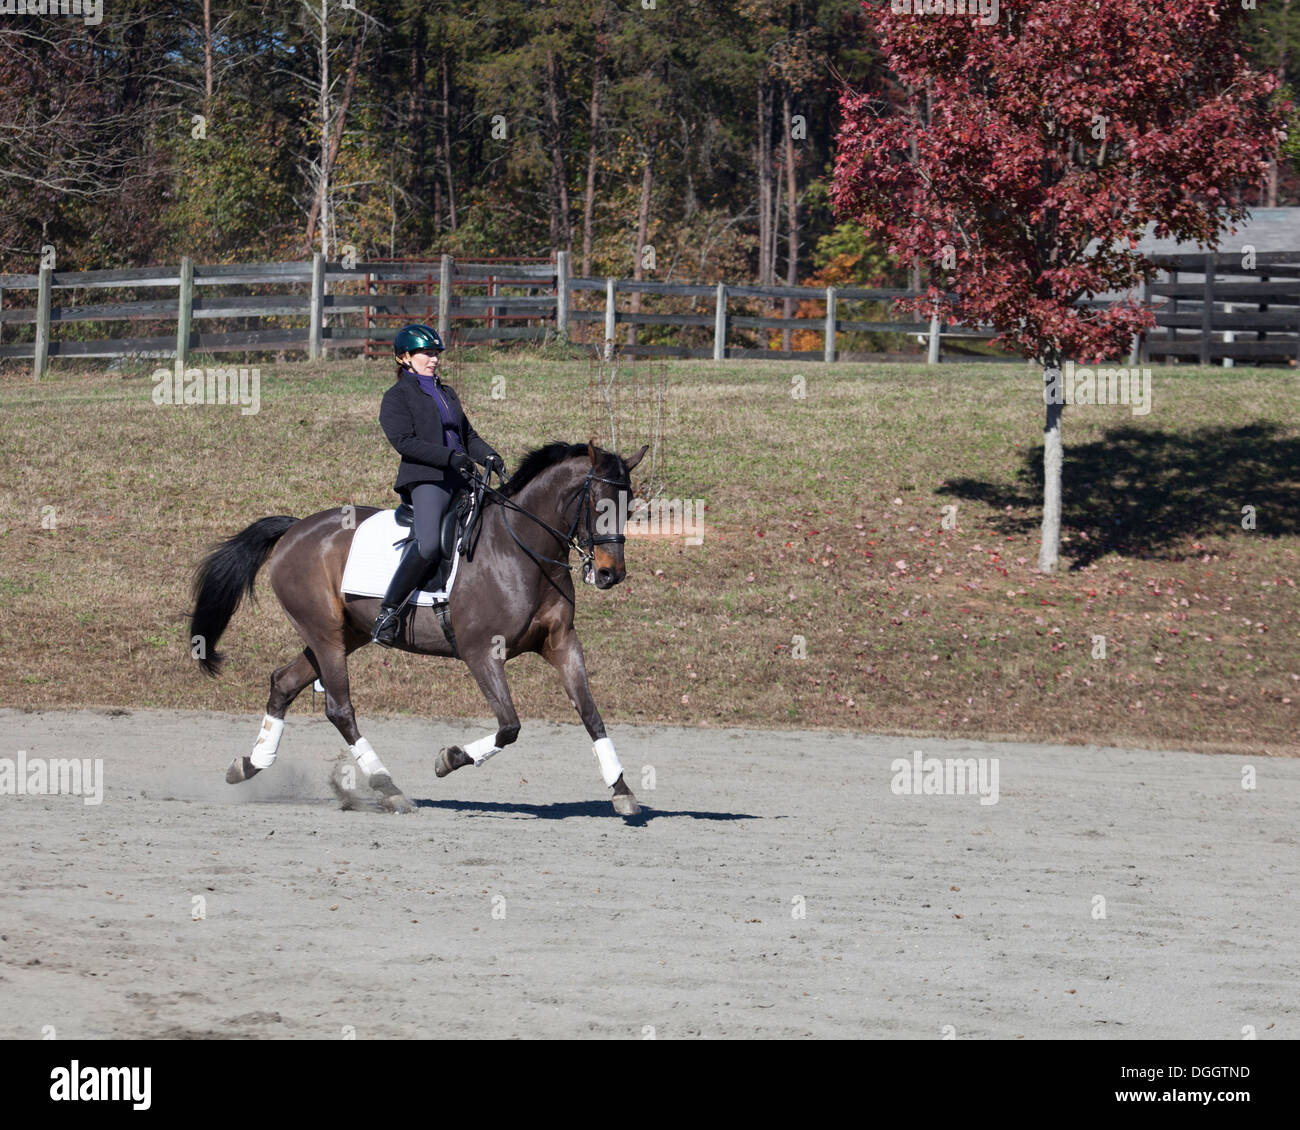 Woman riding Danish warmblood dressage horse - Stock Image